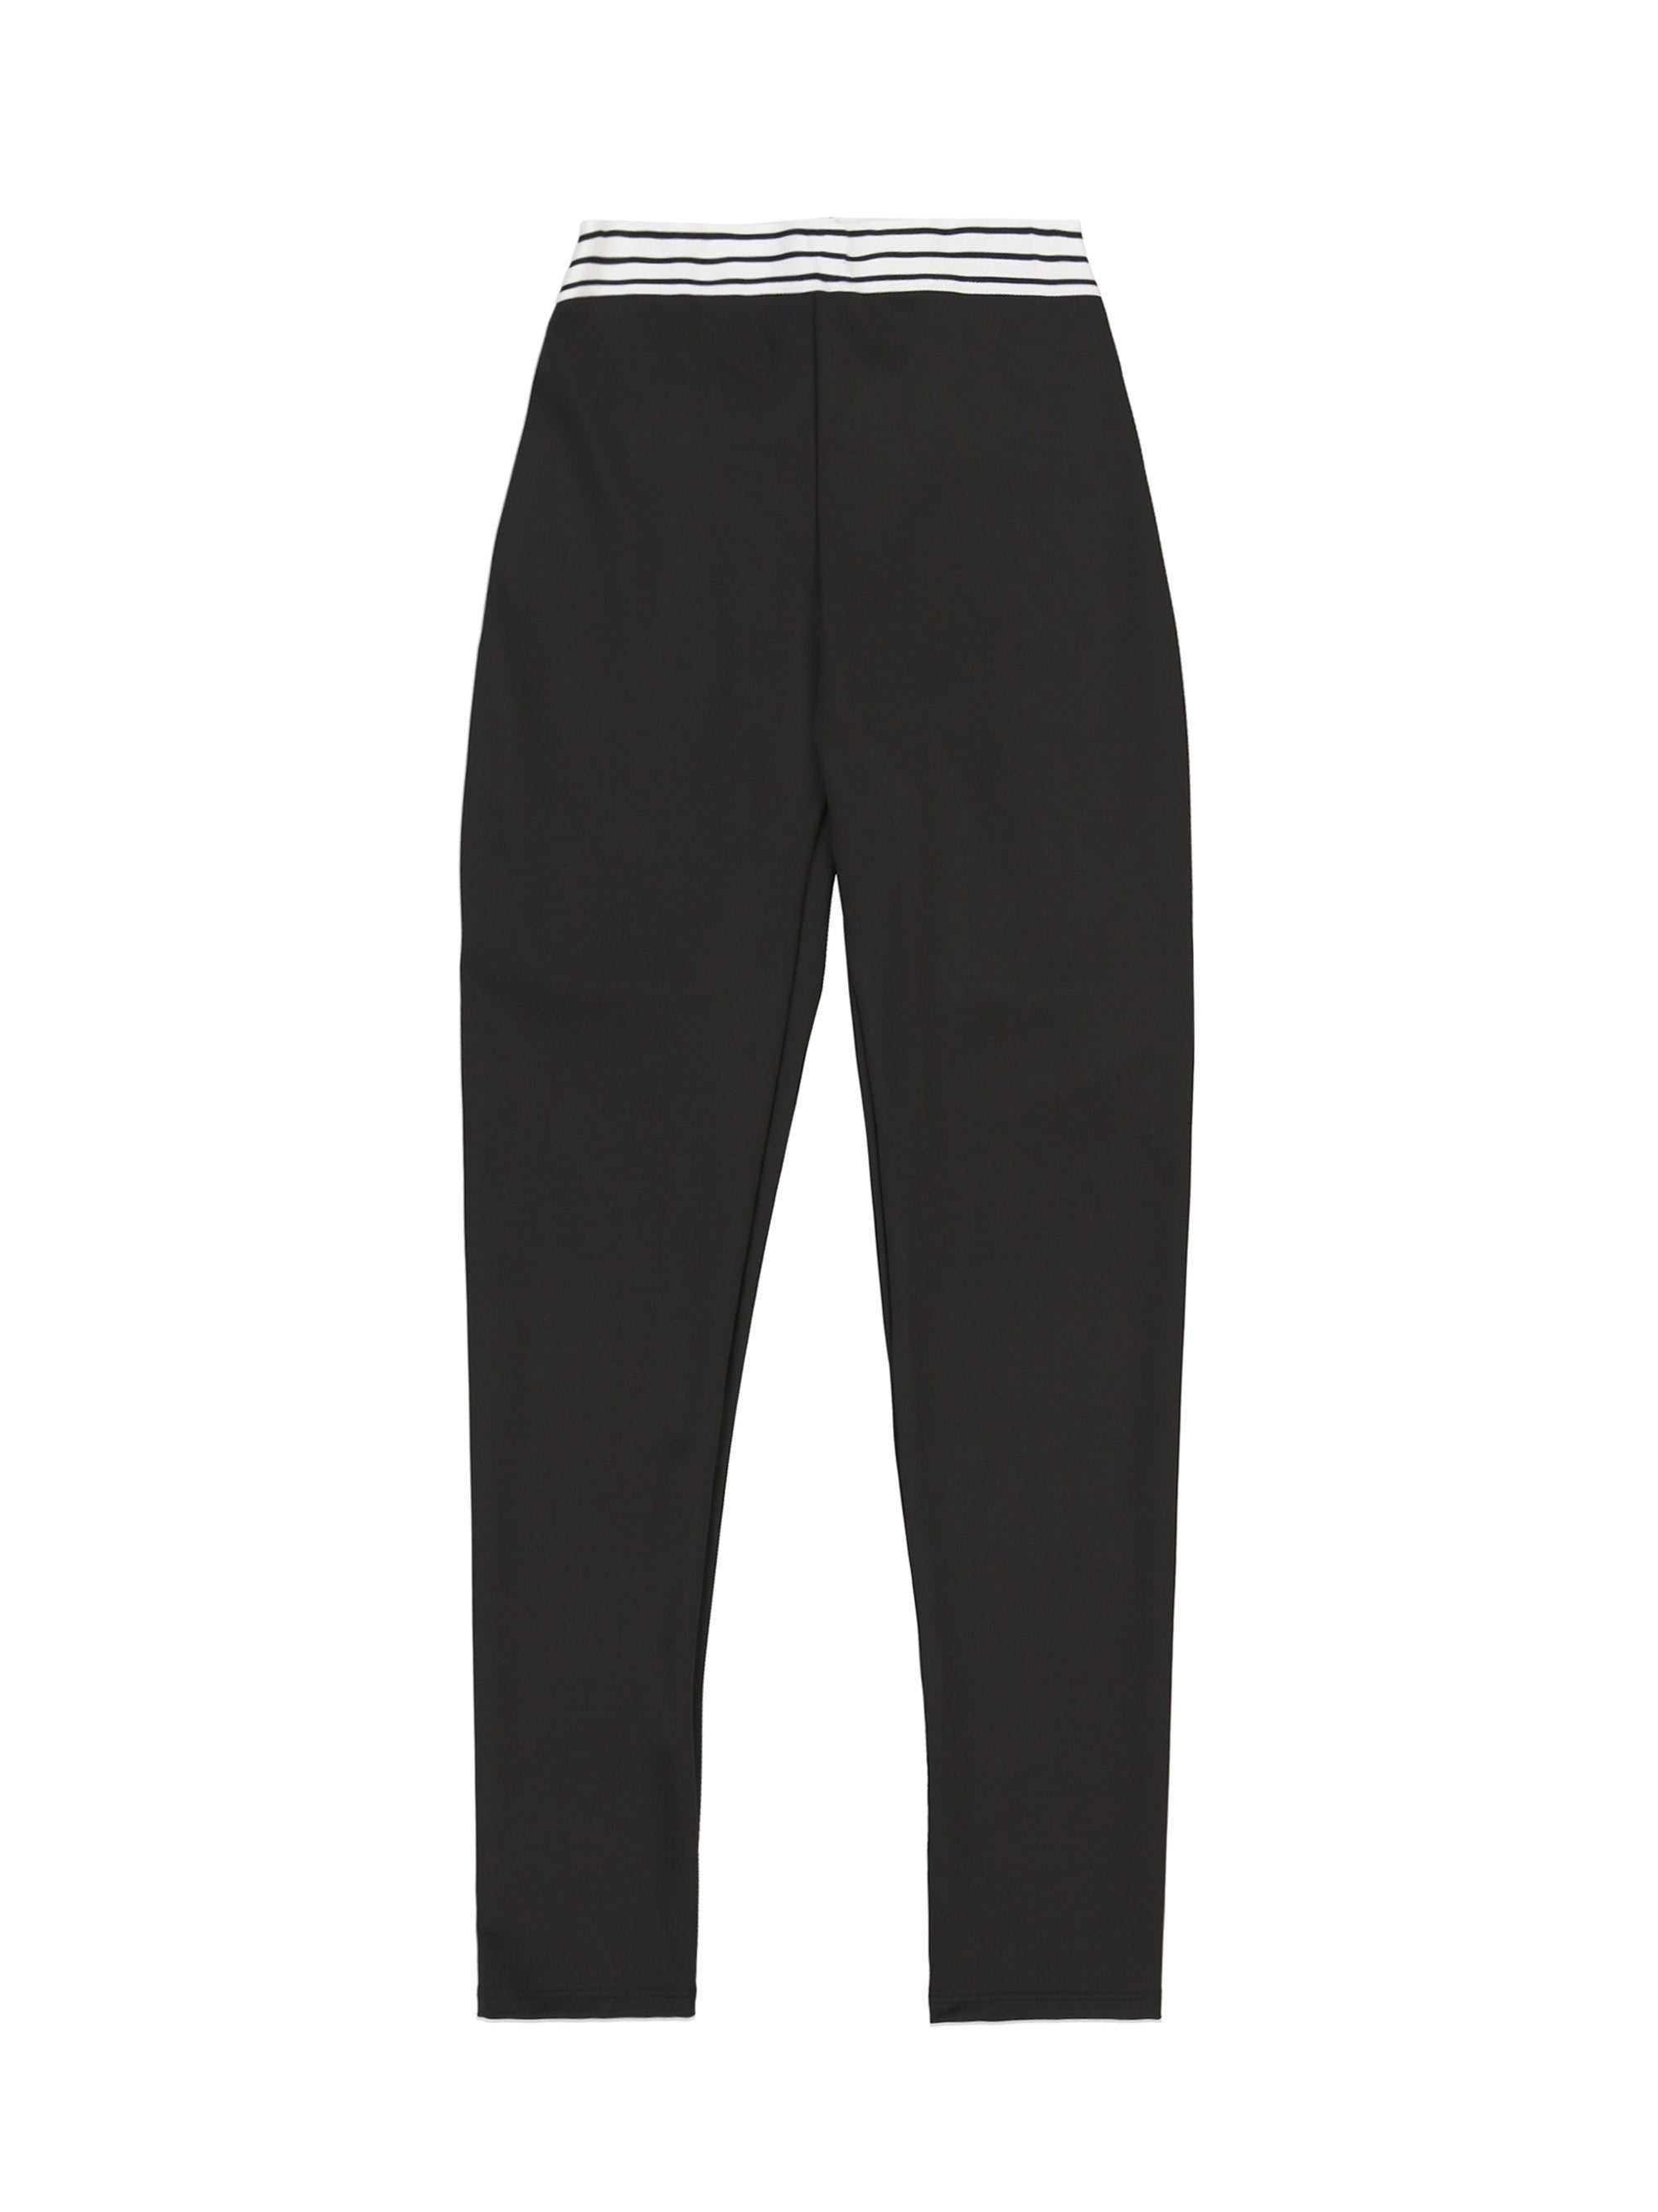 ELASTICLEGGINGS(BLACK)